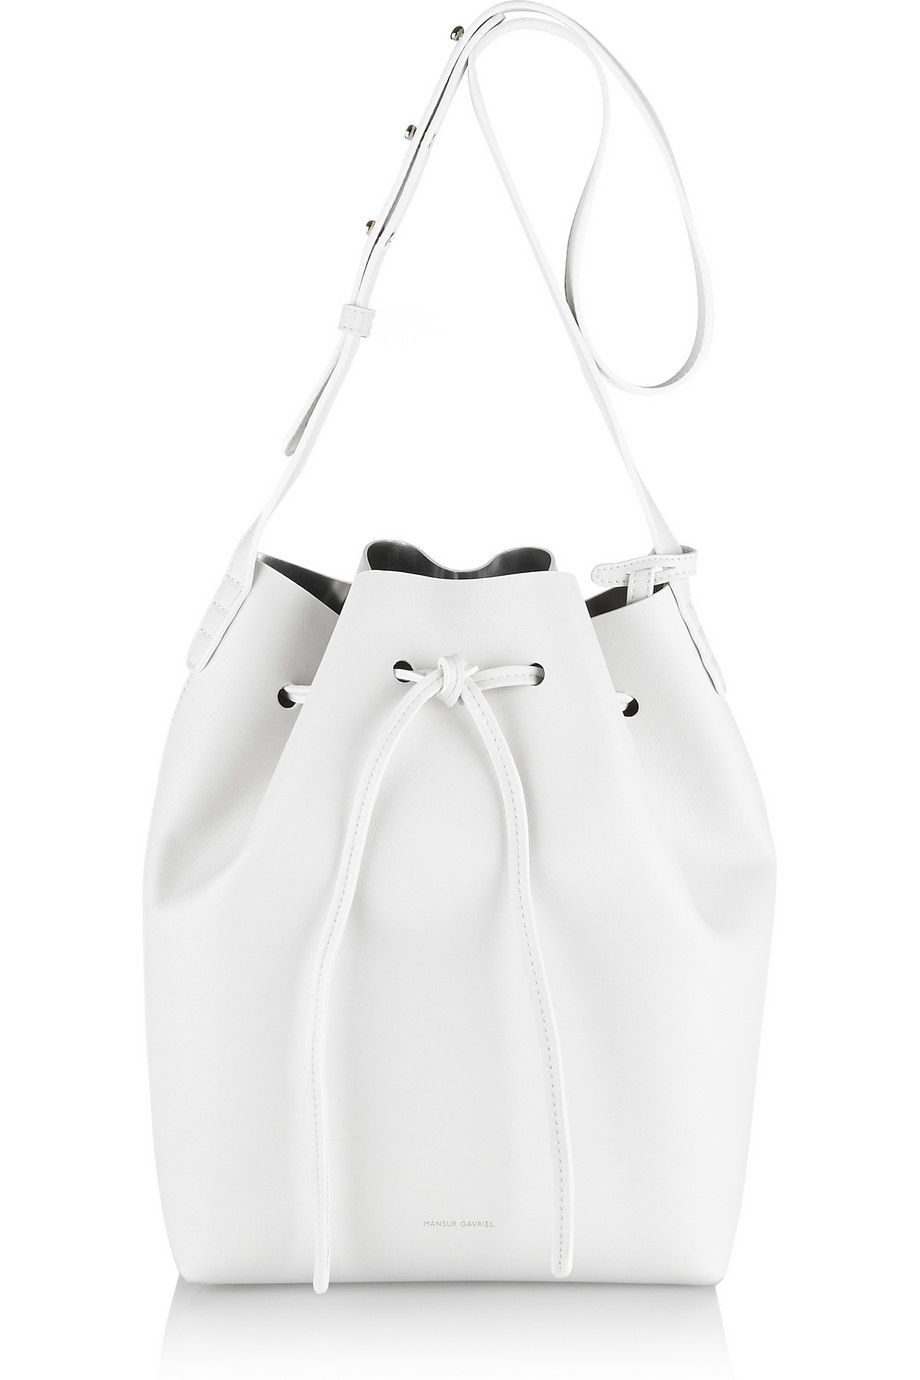 These Mansur Gavriel Bucket Bags Out So Fast Really Like This Sleek White